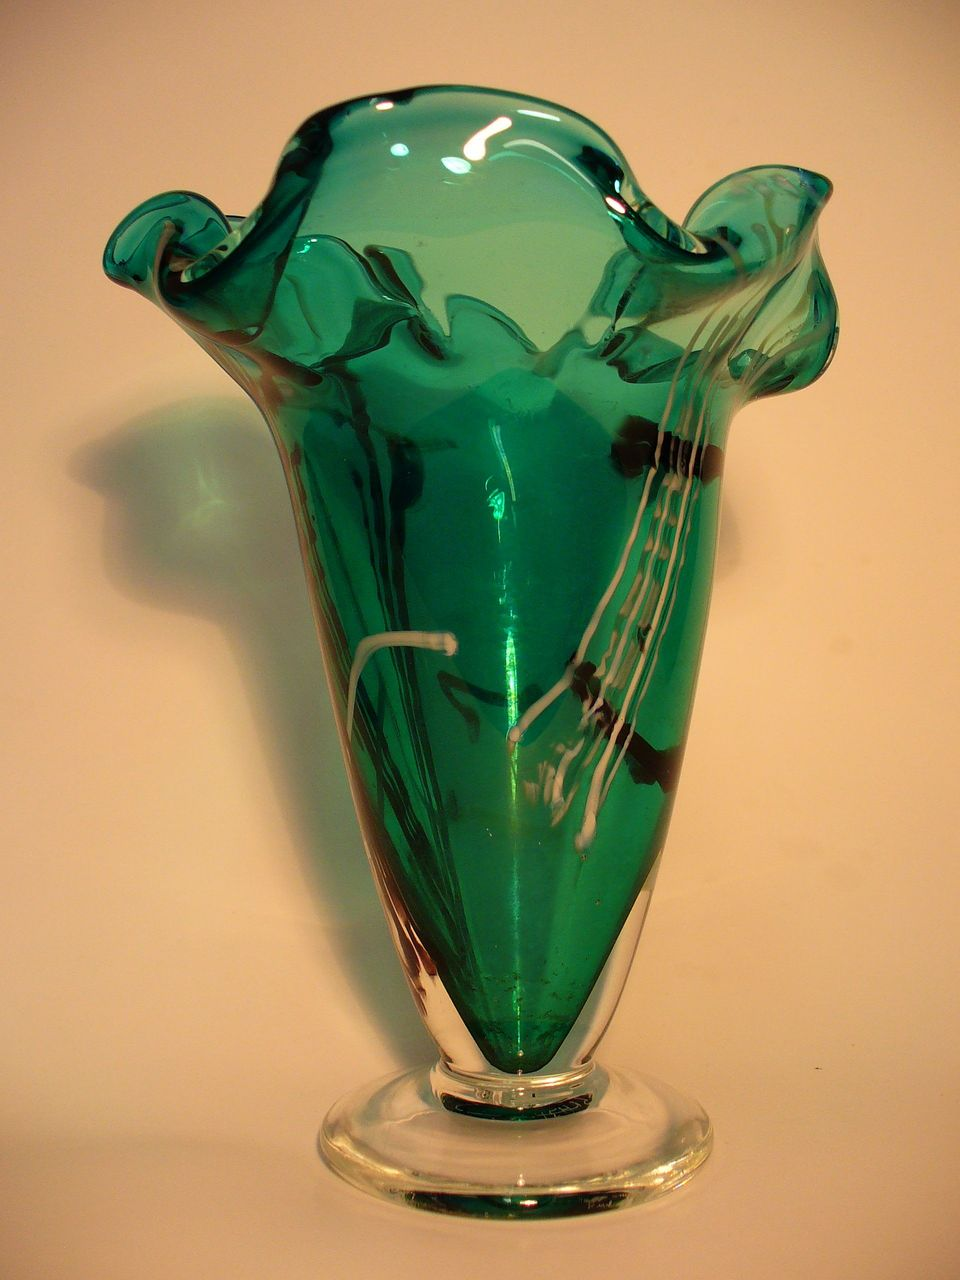 Unique Modern Cased Art Glass Vase Signed by Artist 1986